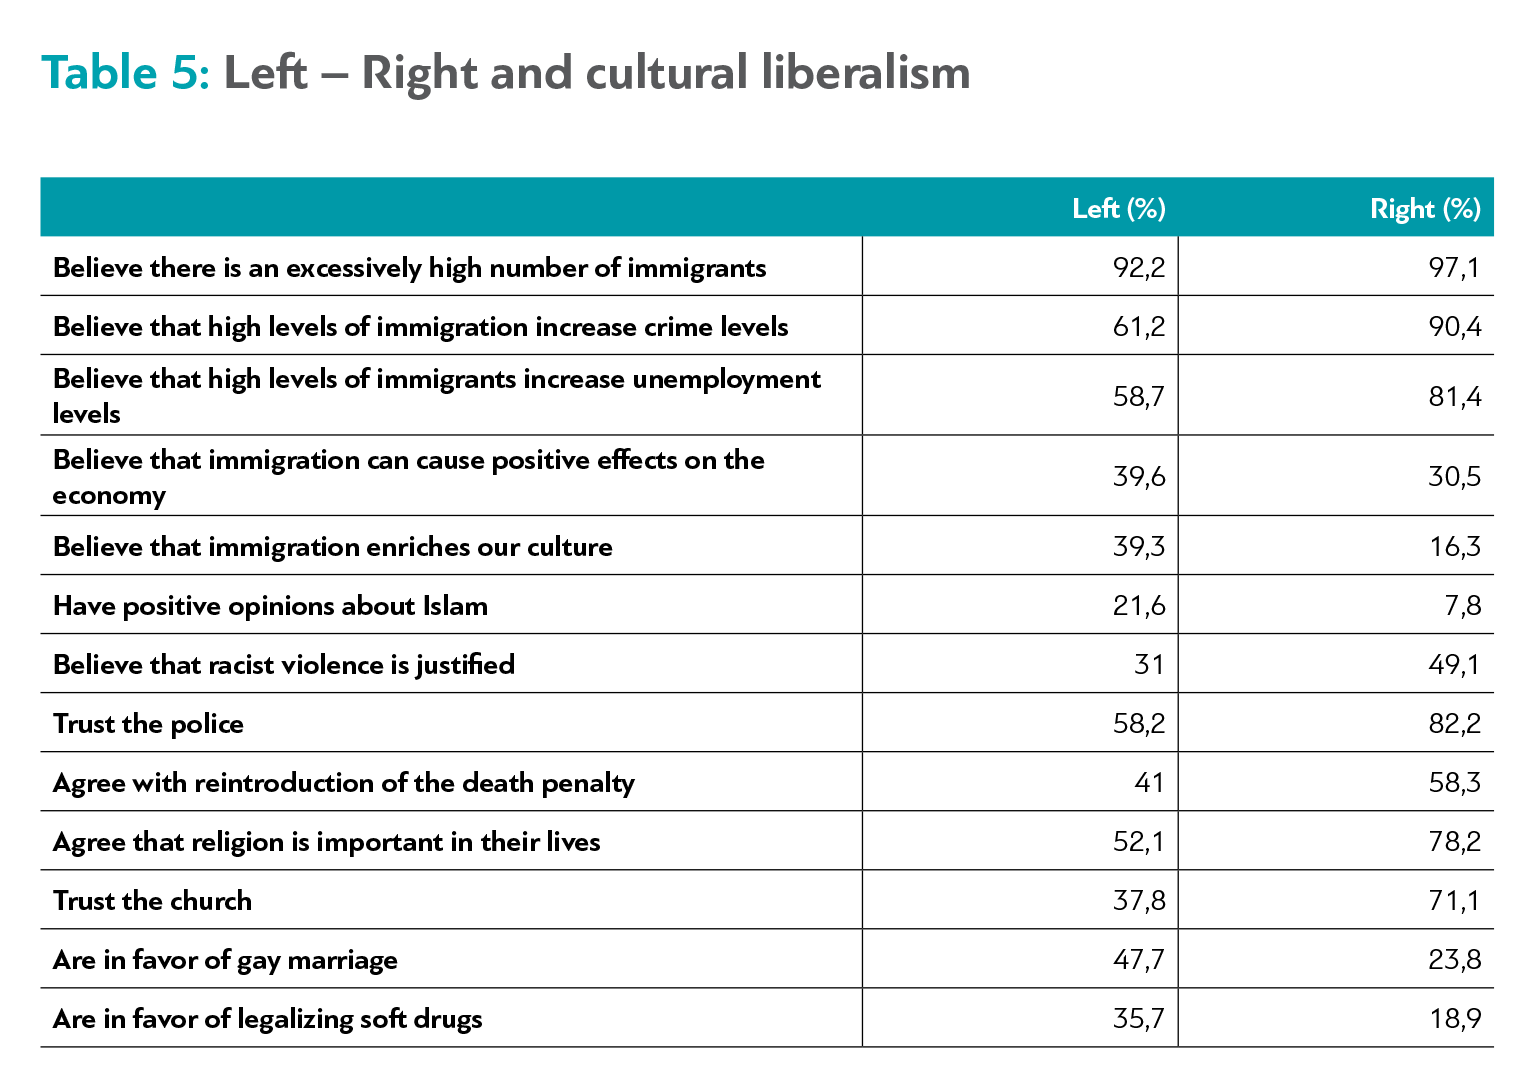 hight resolution of however even though the left group systemically adopts views more oriented to cultural liberalism than the right group the differences don t seem to